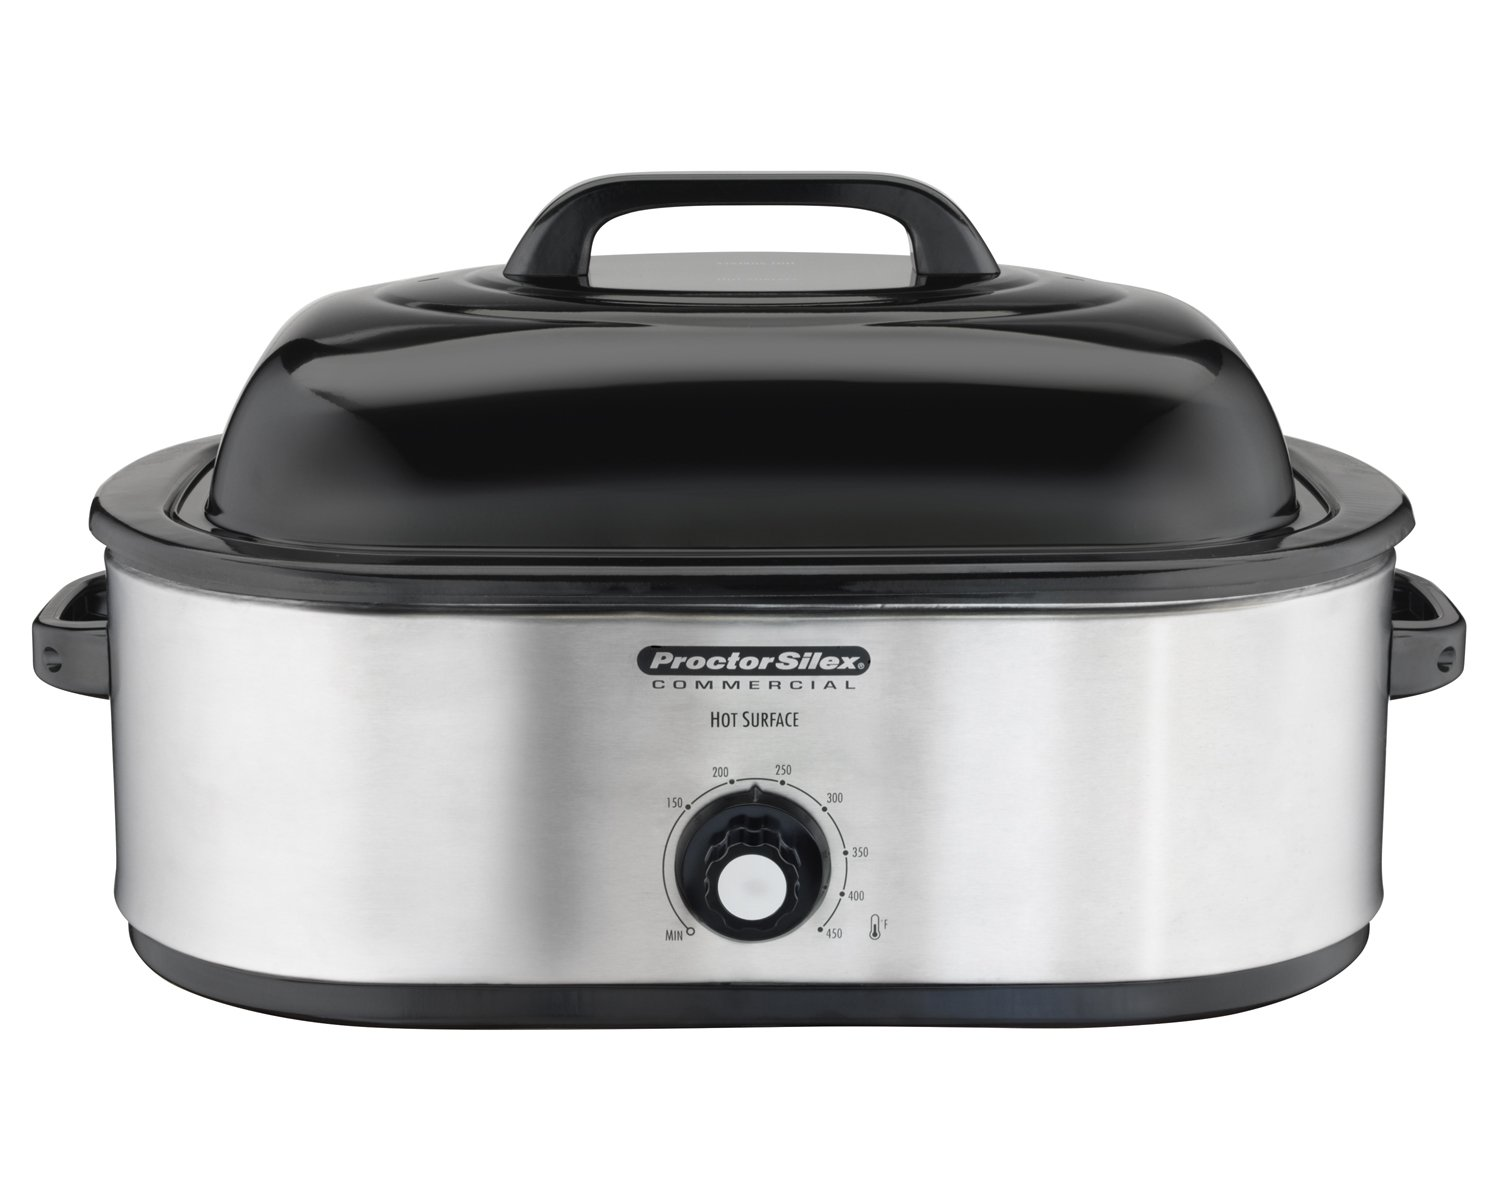 Proctor Silex Commercial 18 Quart Roaster Oven, Food Warmer, Stainless Steel (32920)